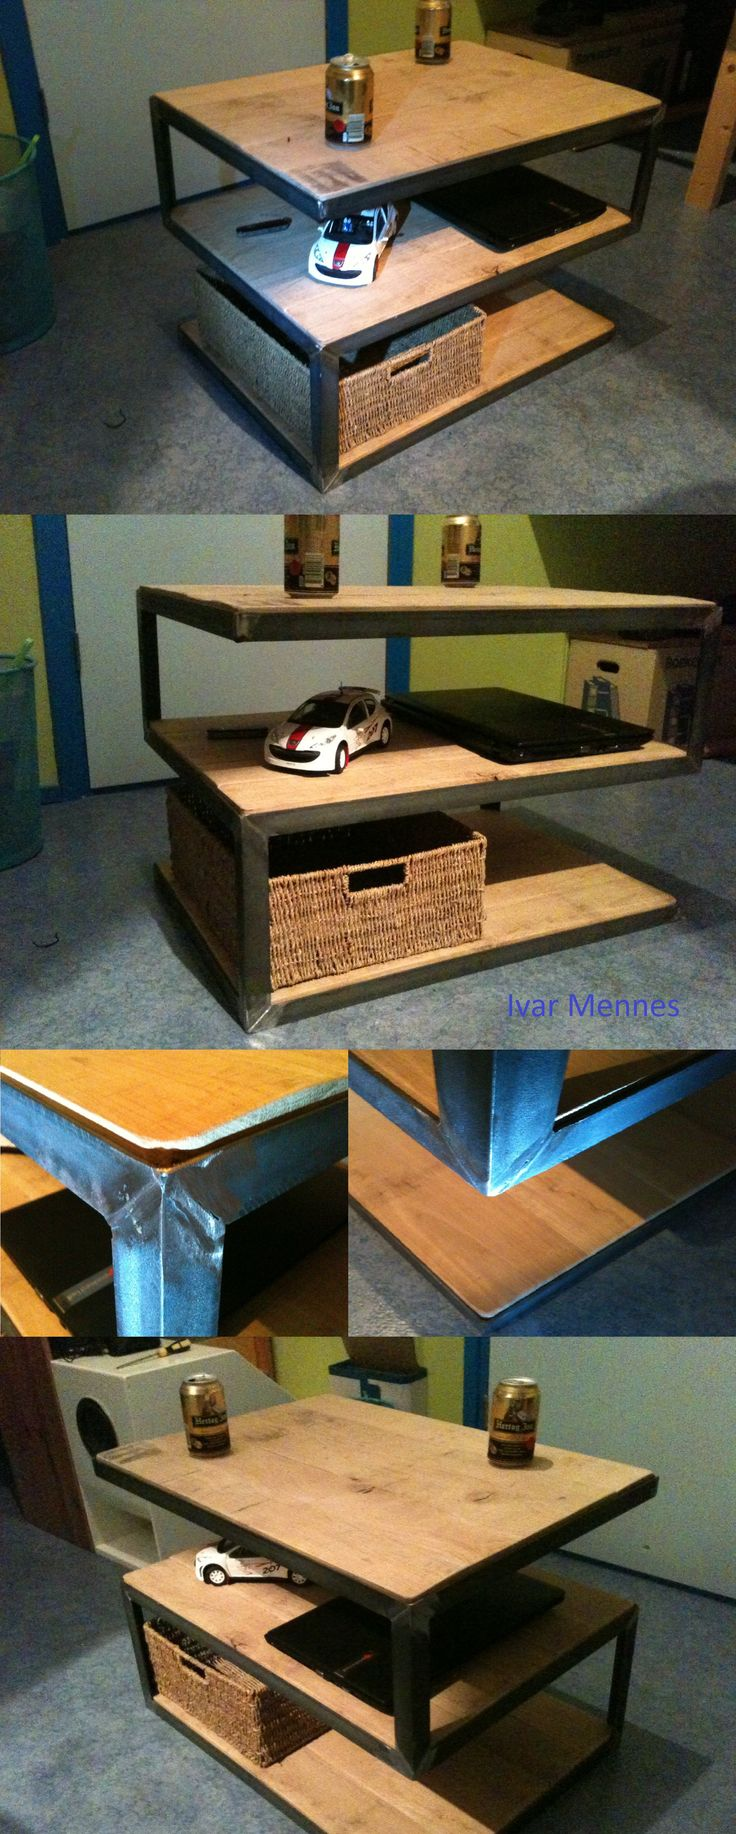 This rustic heavy coffee table is made using steel and oak wood. I think it would look great in both mancave and disign interior.